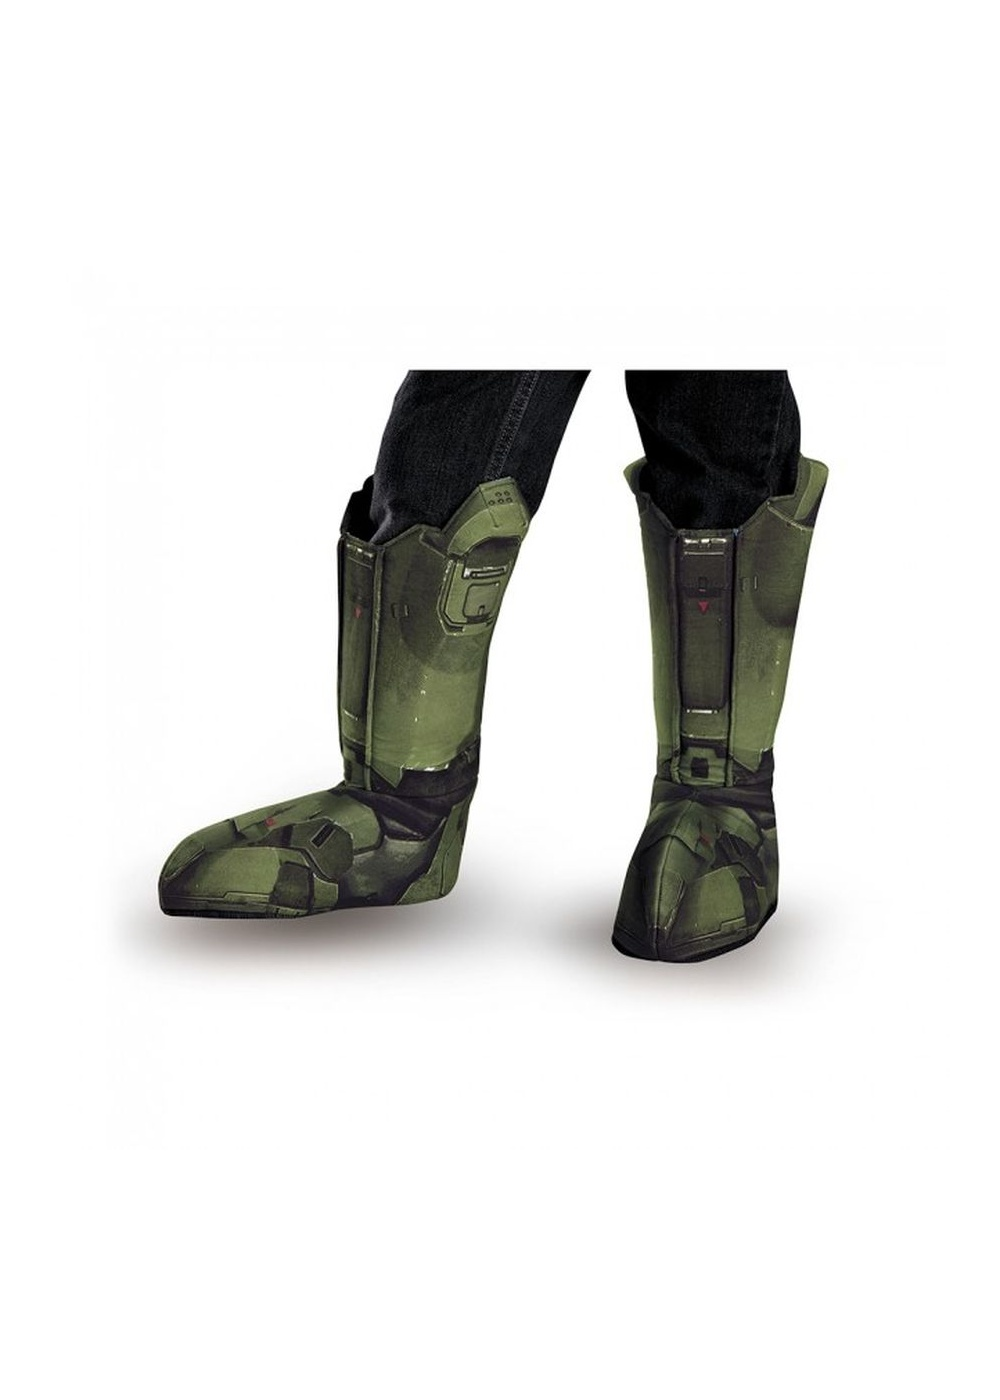 Master Chief Halo Men Boot Covers